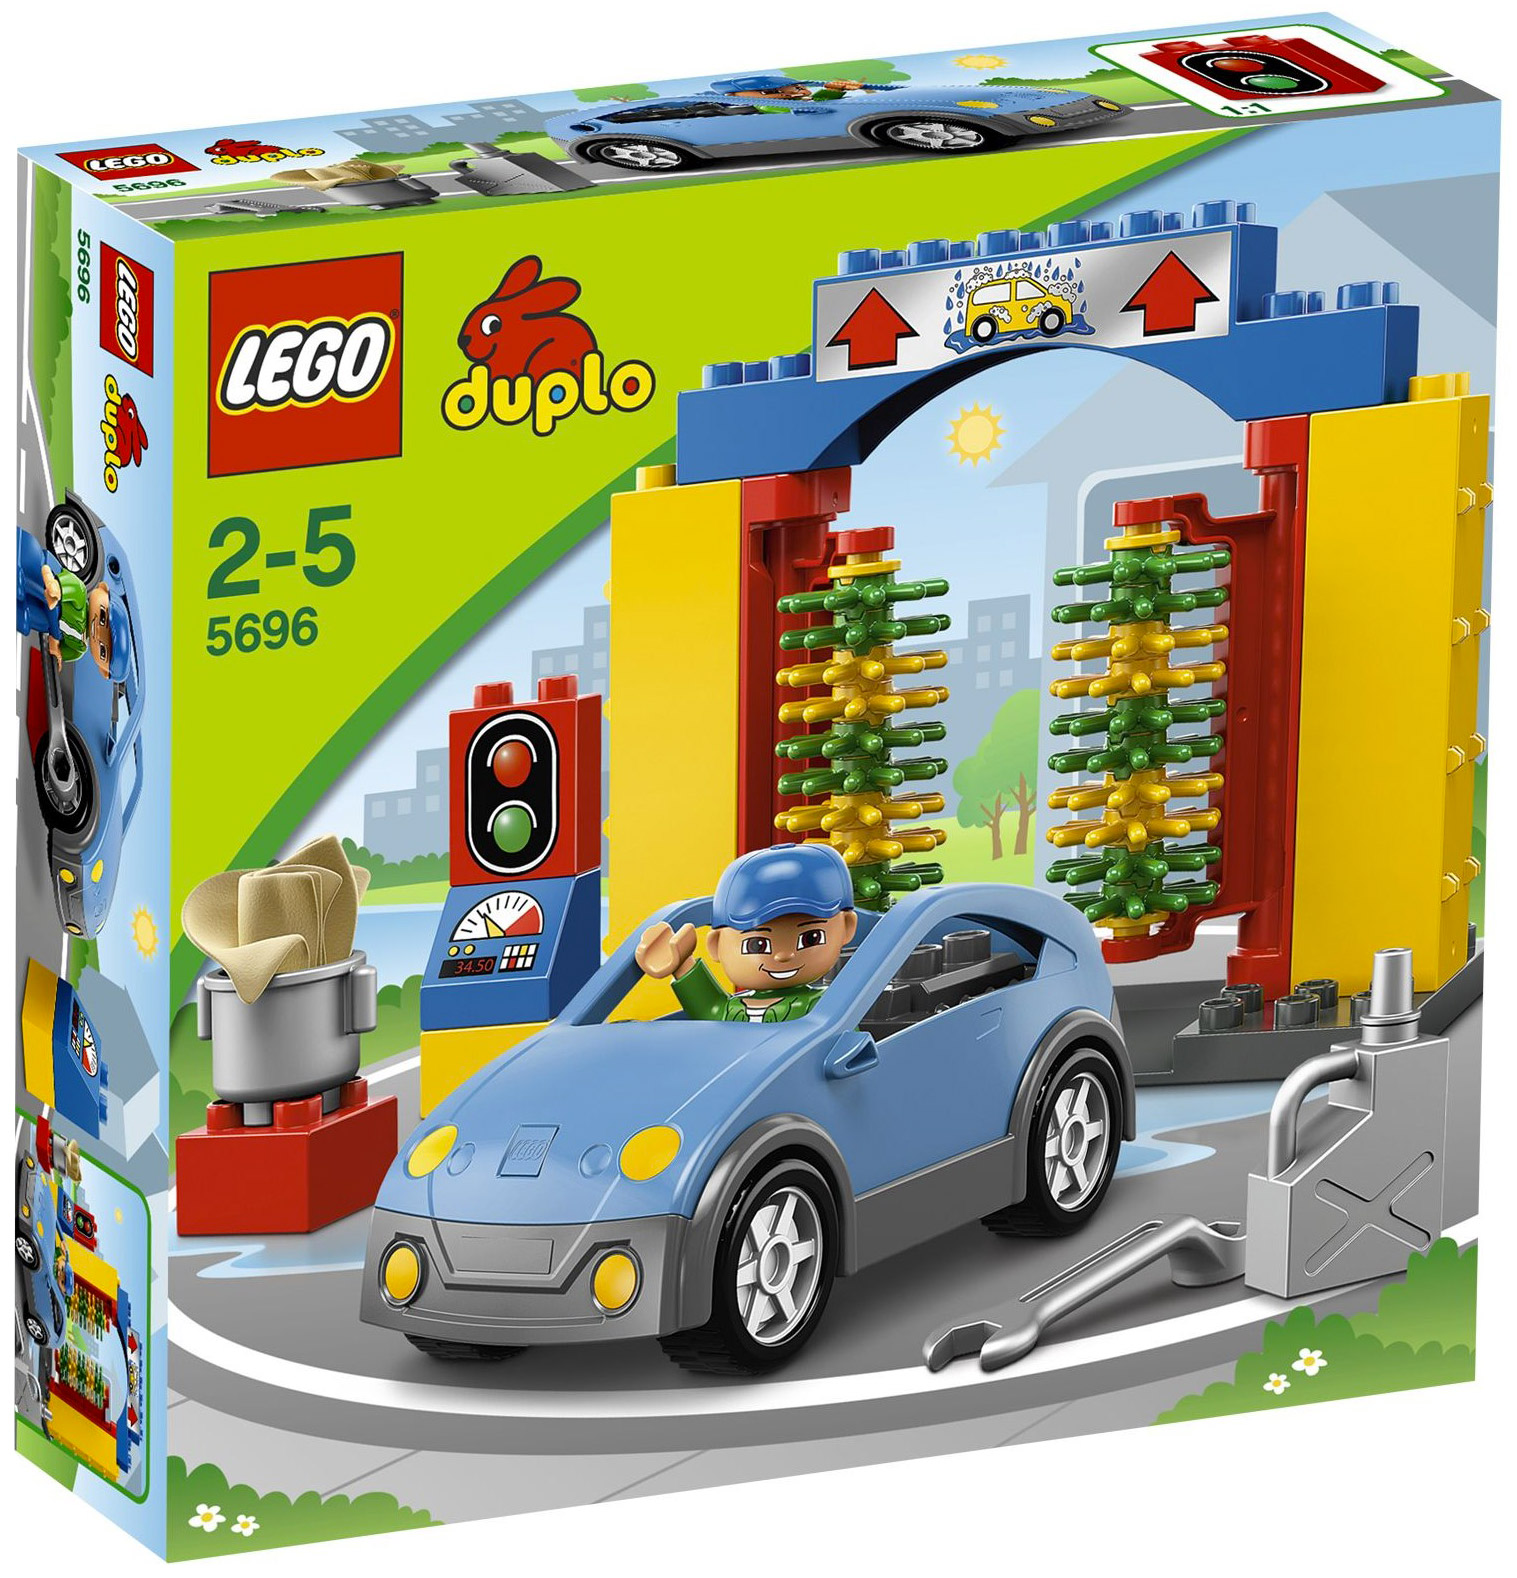 lego duplo 5696 pas cher la station de lavage. Black Bedroom Furniture Sets. Home Design Ideas